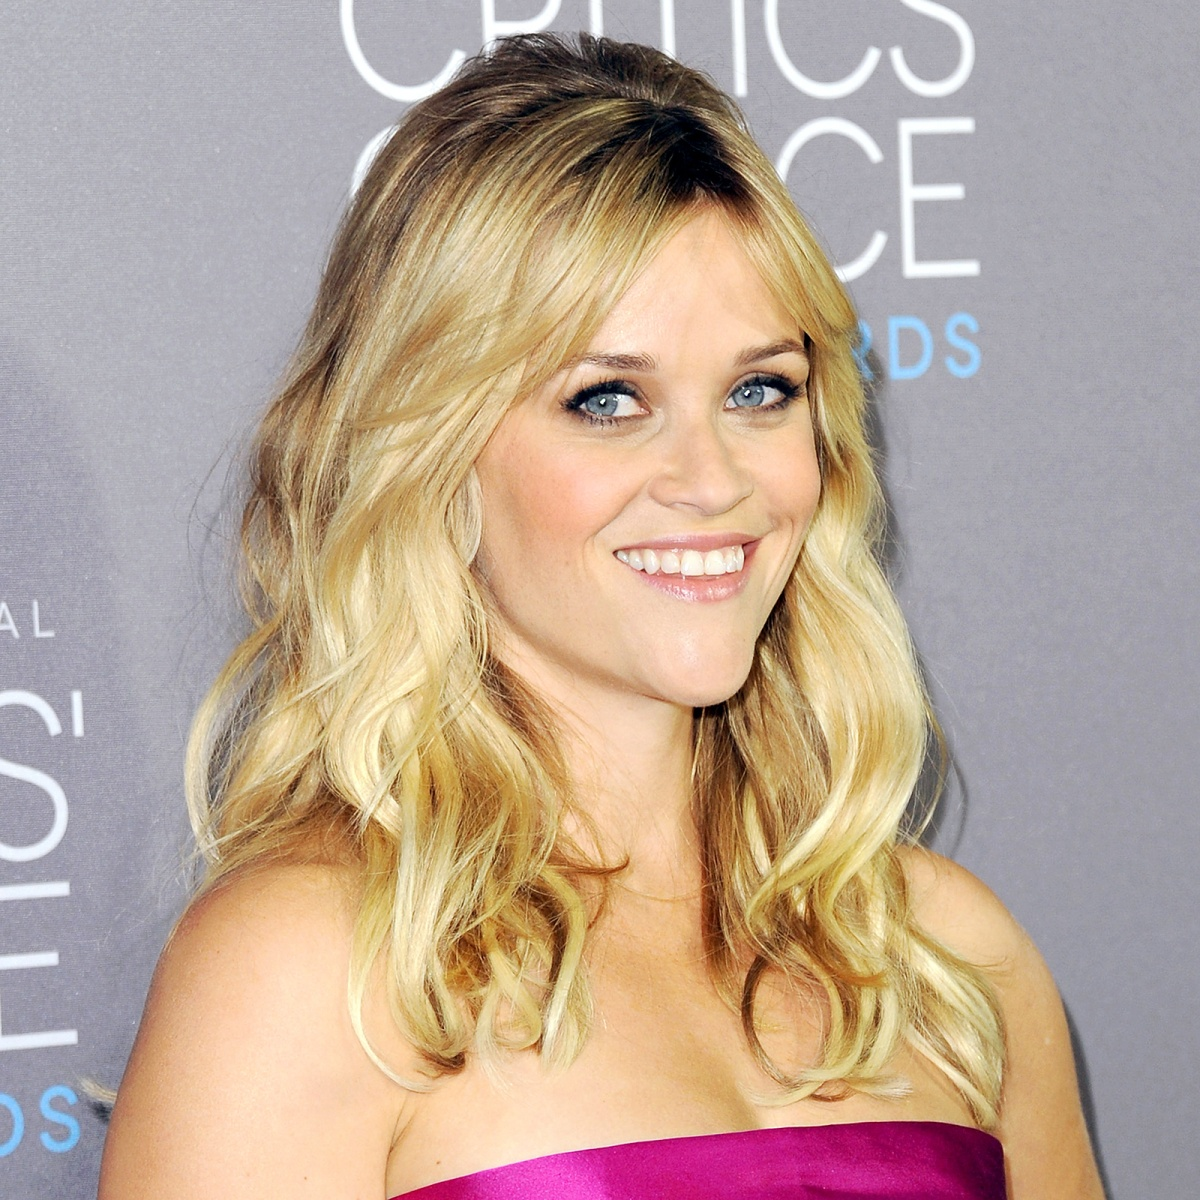 Reese Witherspoon Channels Brigitte Bardot With Sexy Waves at 2015 Critics' Choice Awards: DIY Her Effortless Hairstyle